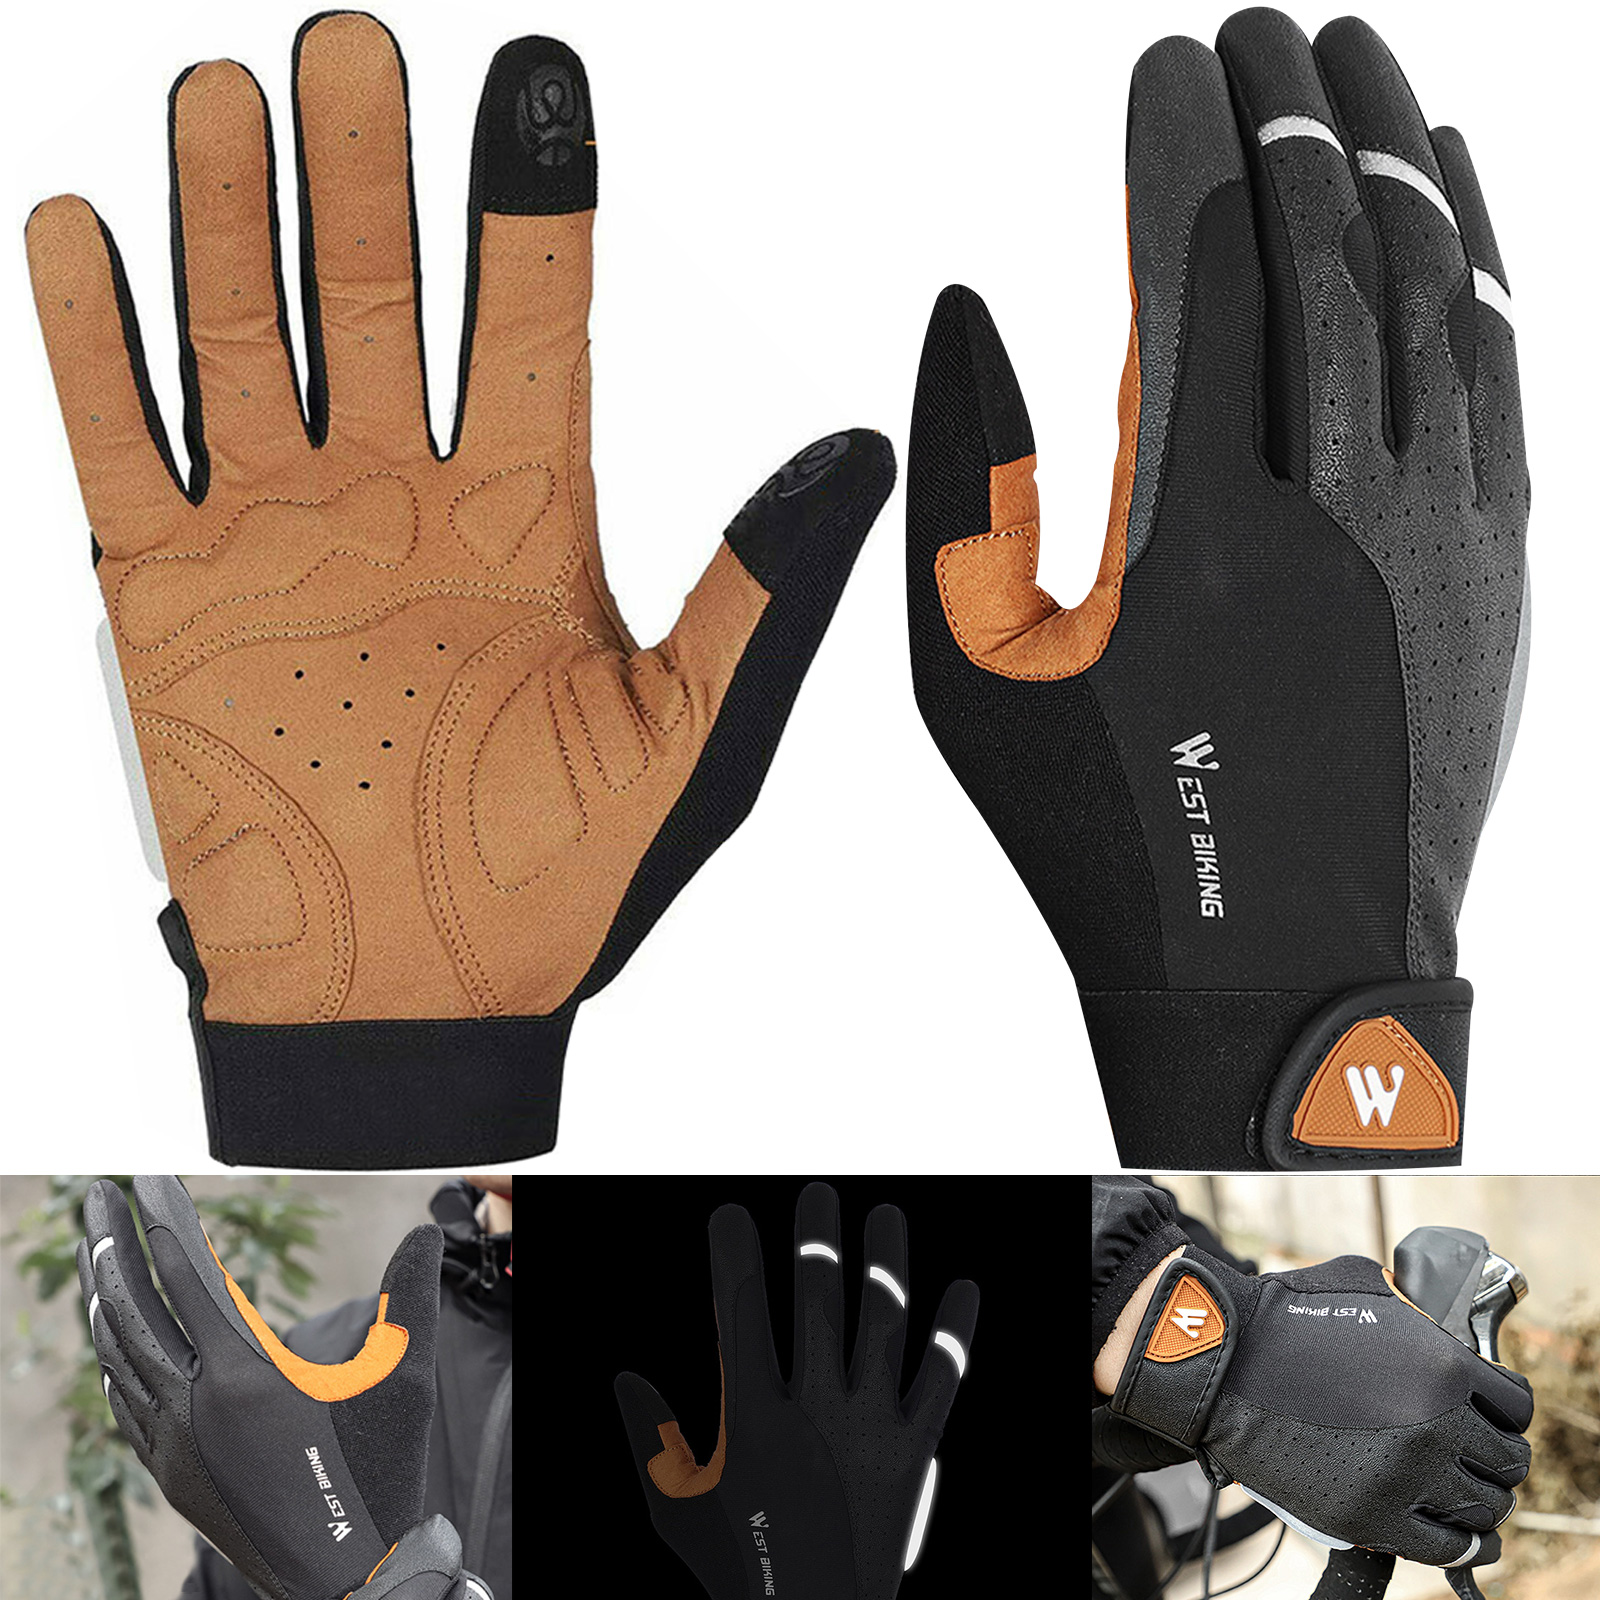 Details about  /Cycling gloves shock absorption anti-slip outdoor full-finger touch screen glove